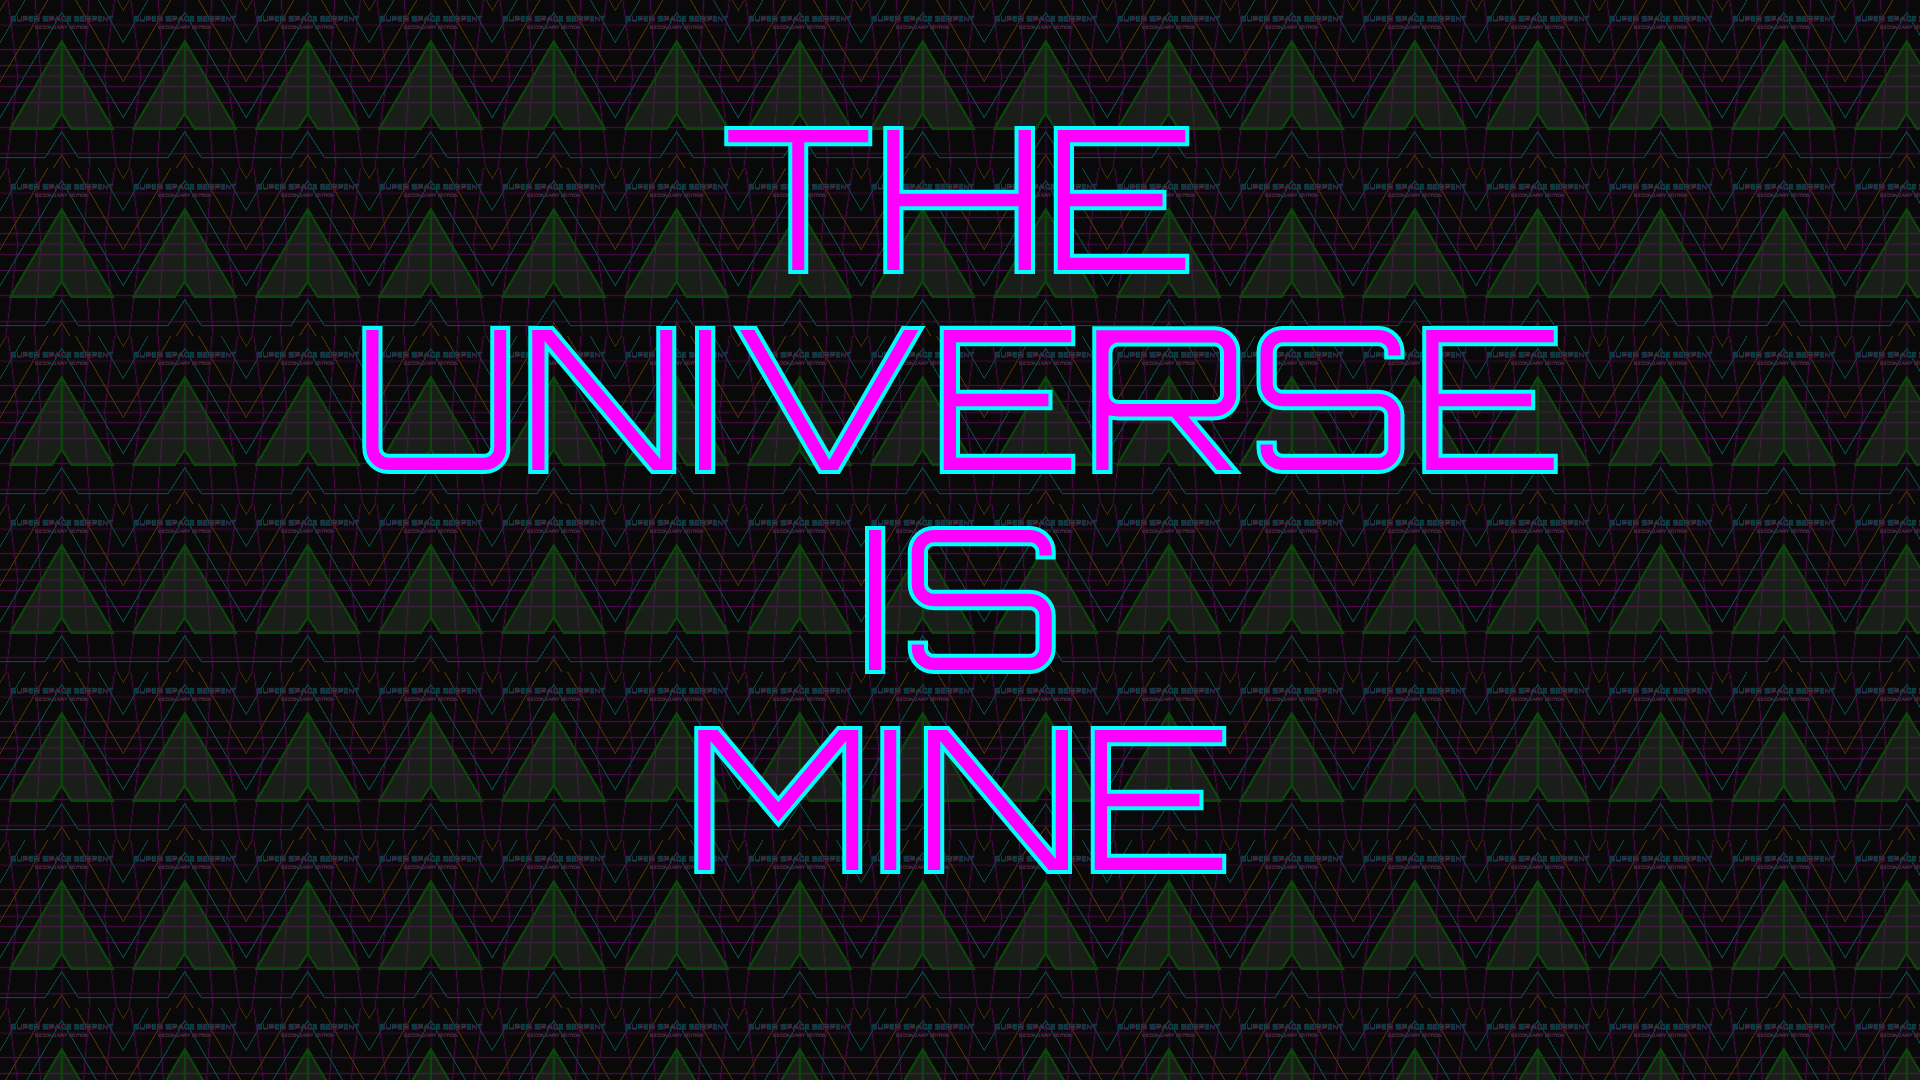 Icon for This universe is mine